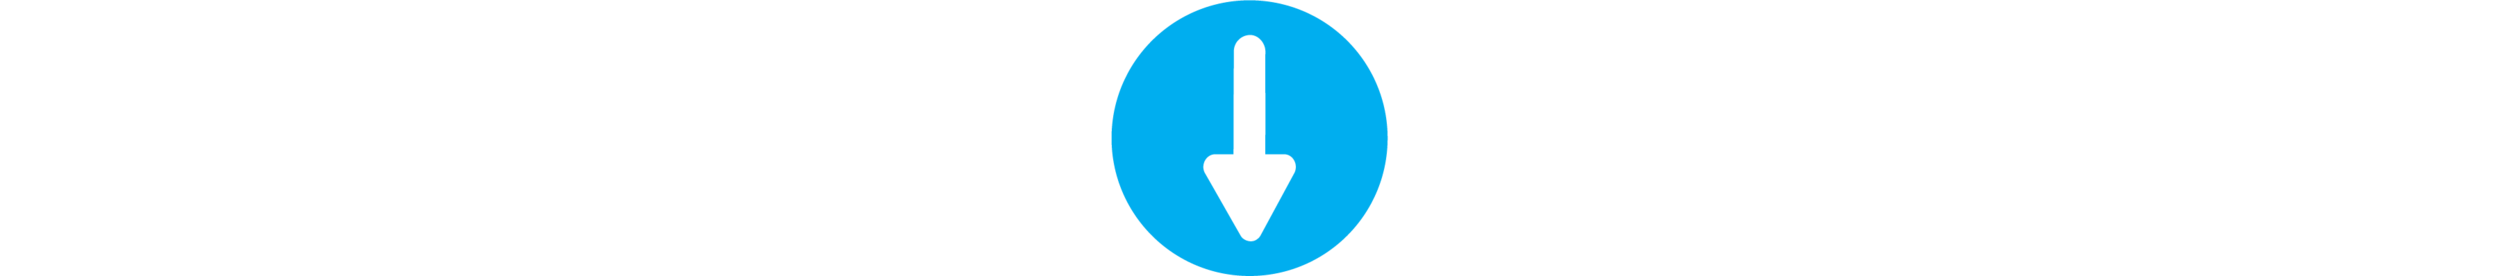 icon_arrow_wide.png